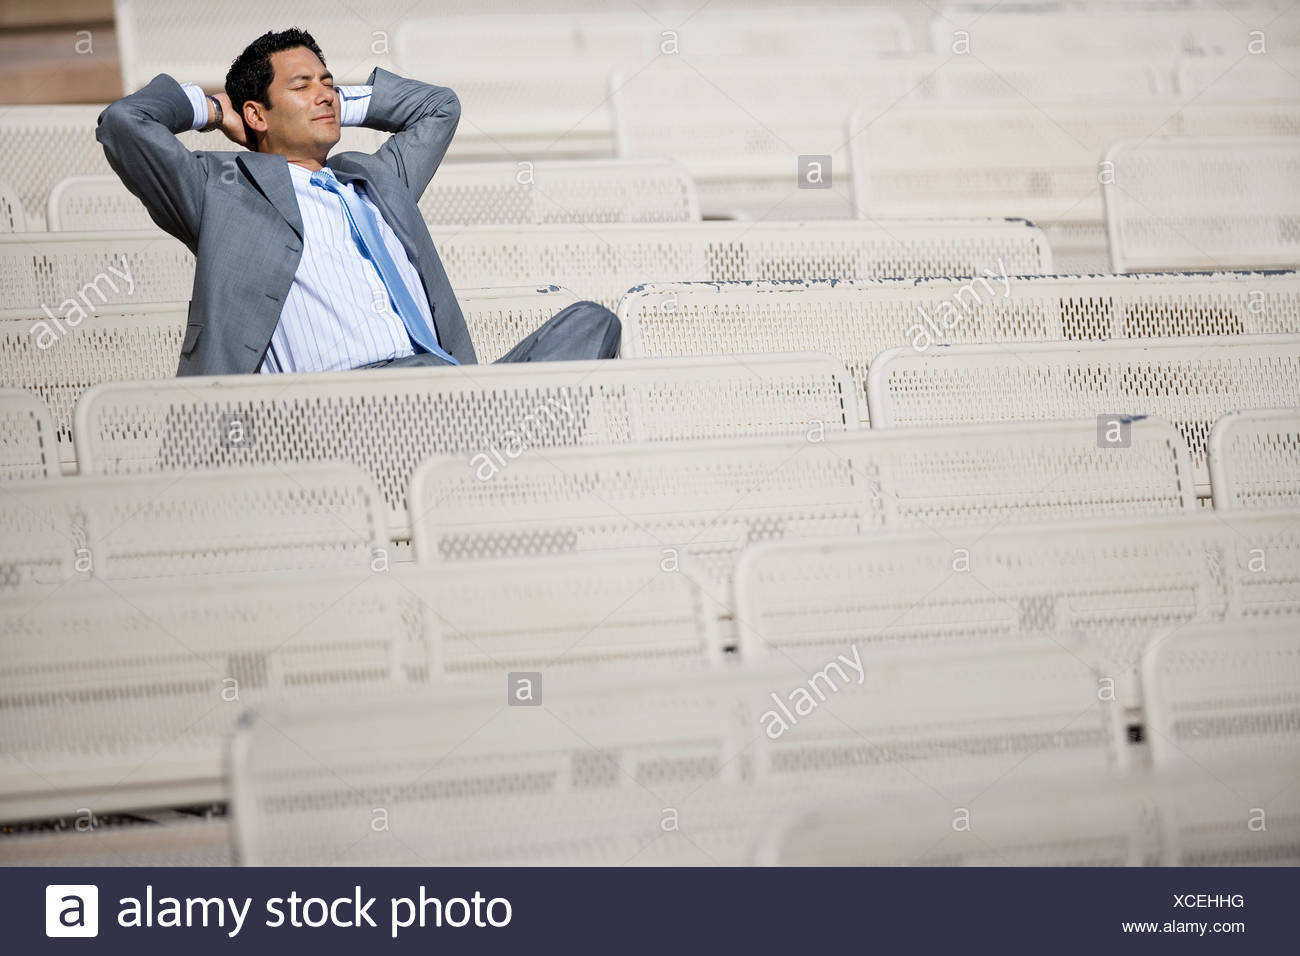 Businessman in grey suit sitting in empty stadium seat hands behind head eyes closed smiling - Stock Image